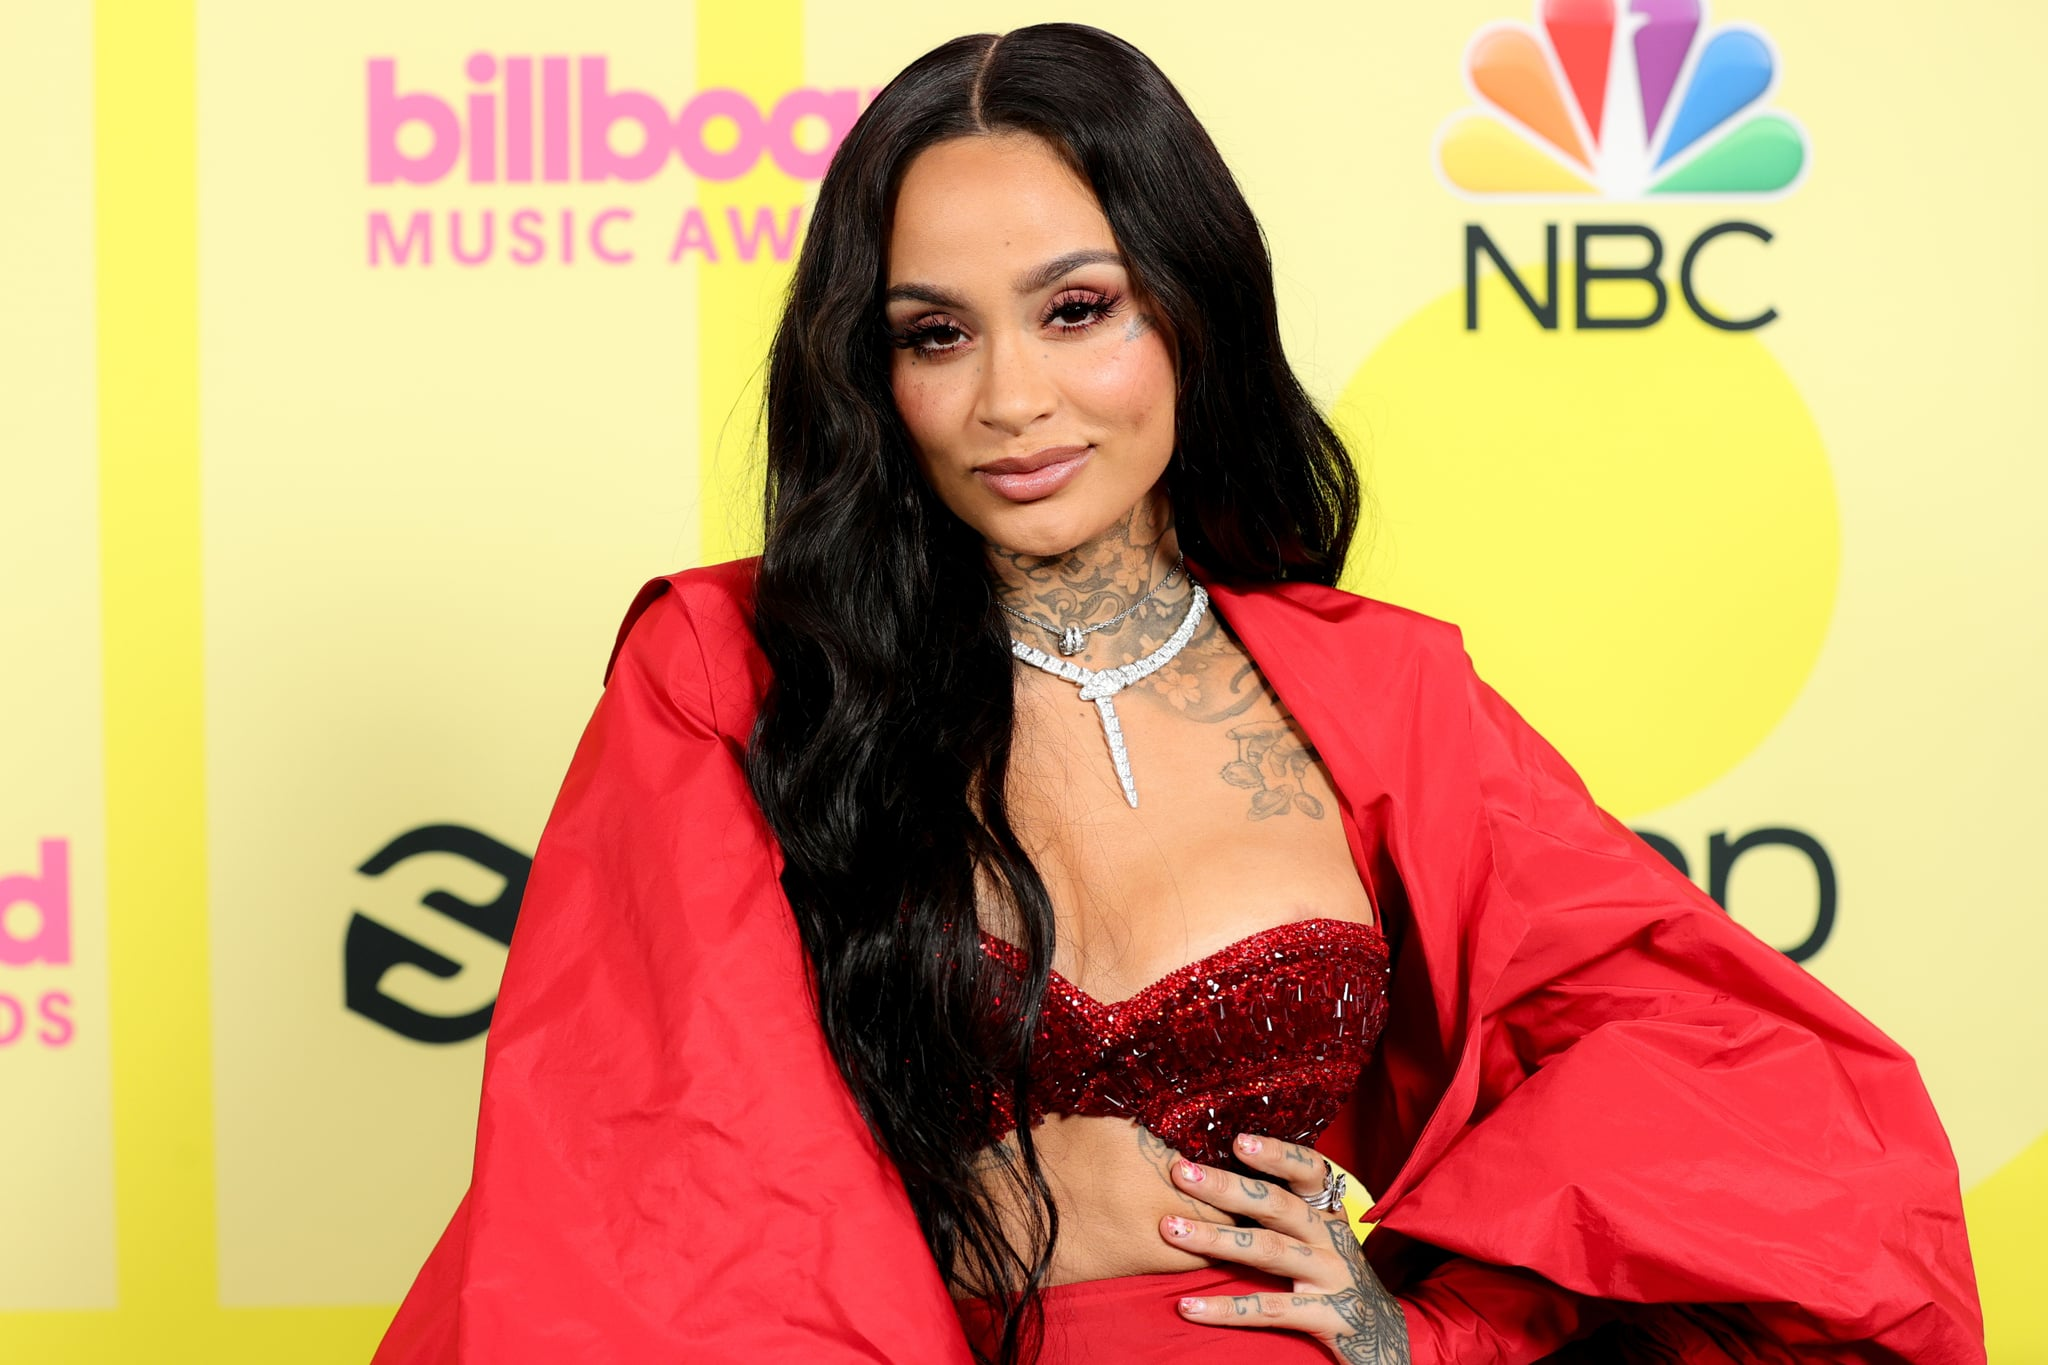 LOS ANGELES, CALIFORNIA - MAY 23: In this image released on May 23, Kehlani poses backstage for the 2021 Billboard Music Awards, broadcast on May 23, 2021 at Microsoft Theater in Los Angeles, California. (Photo by Rich Fury/Getty Images for dcp)